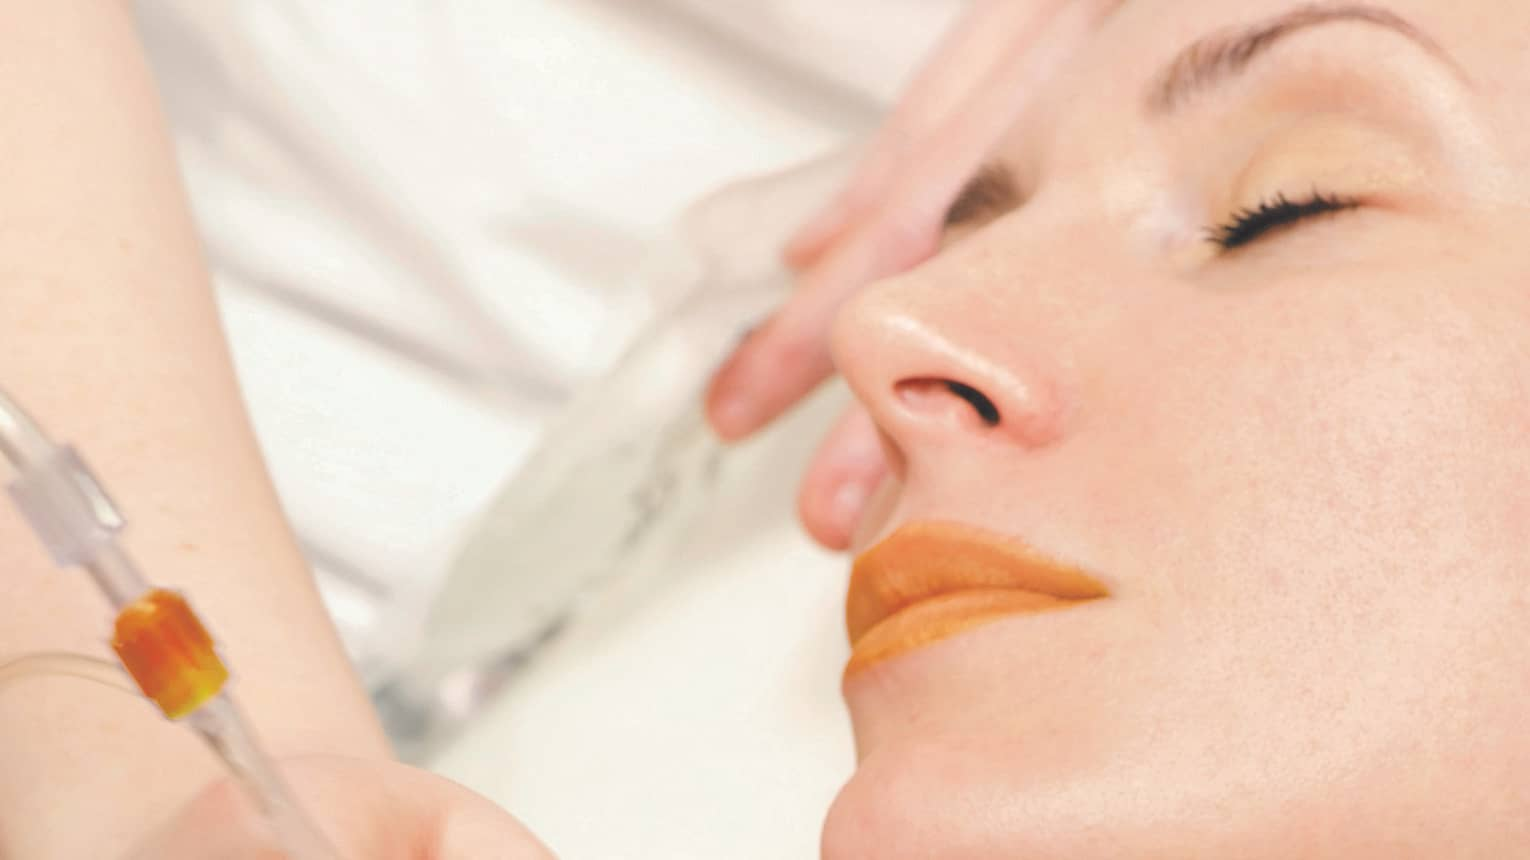 Close-up of woman lying on spa table with eyes closed as staff holds facial tool